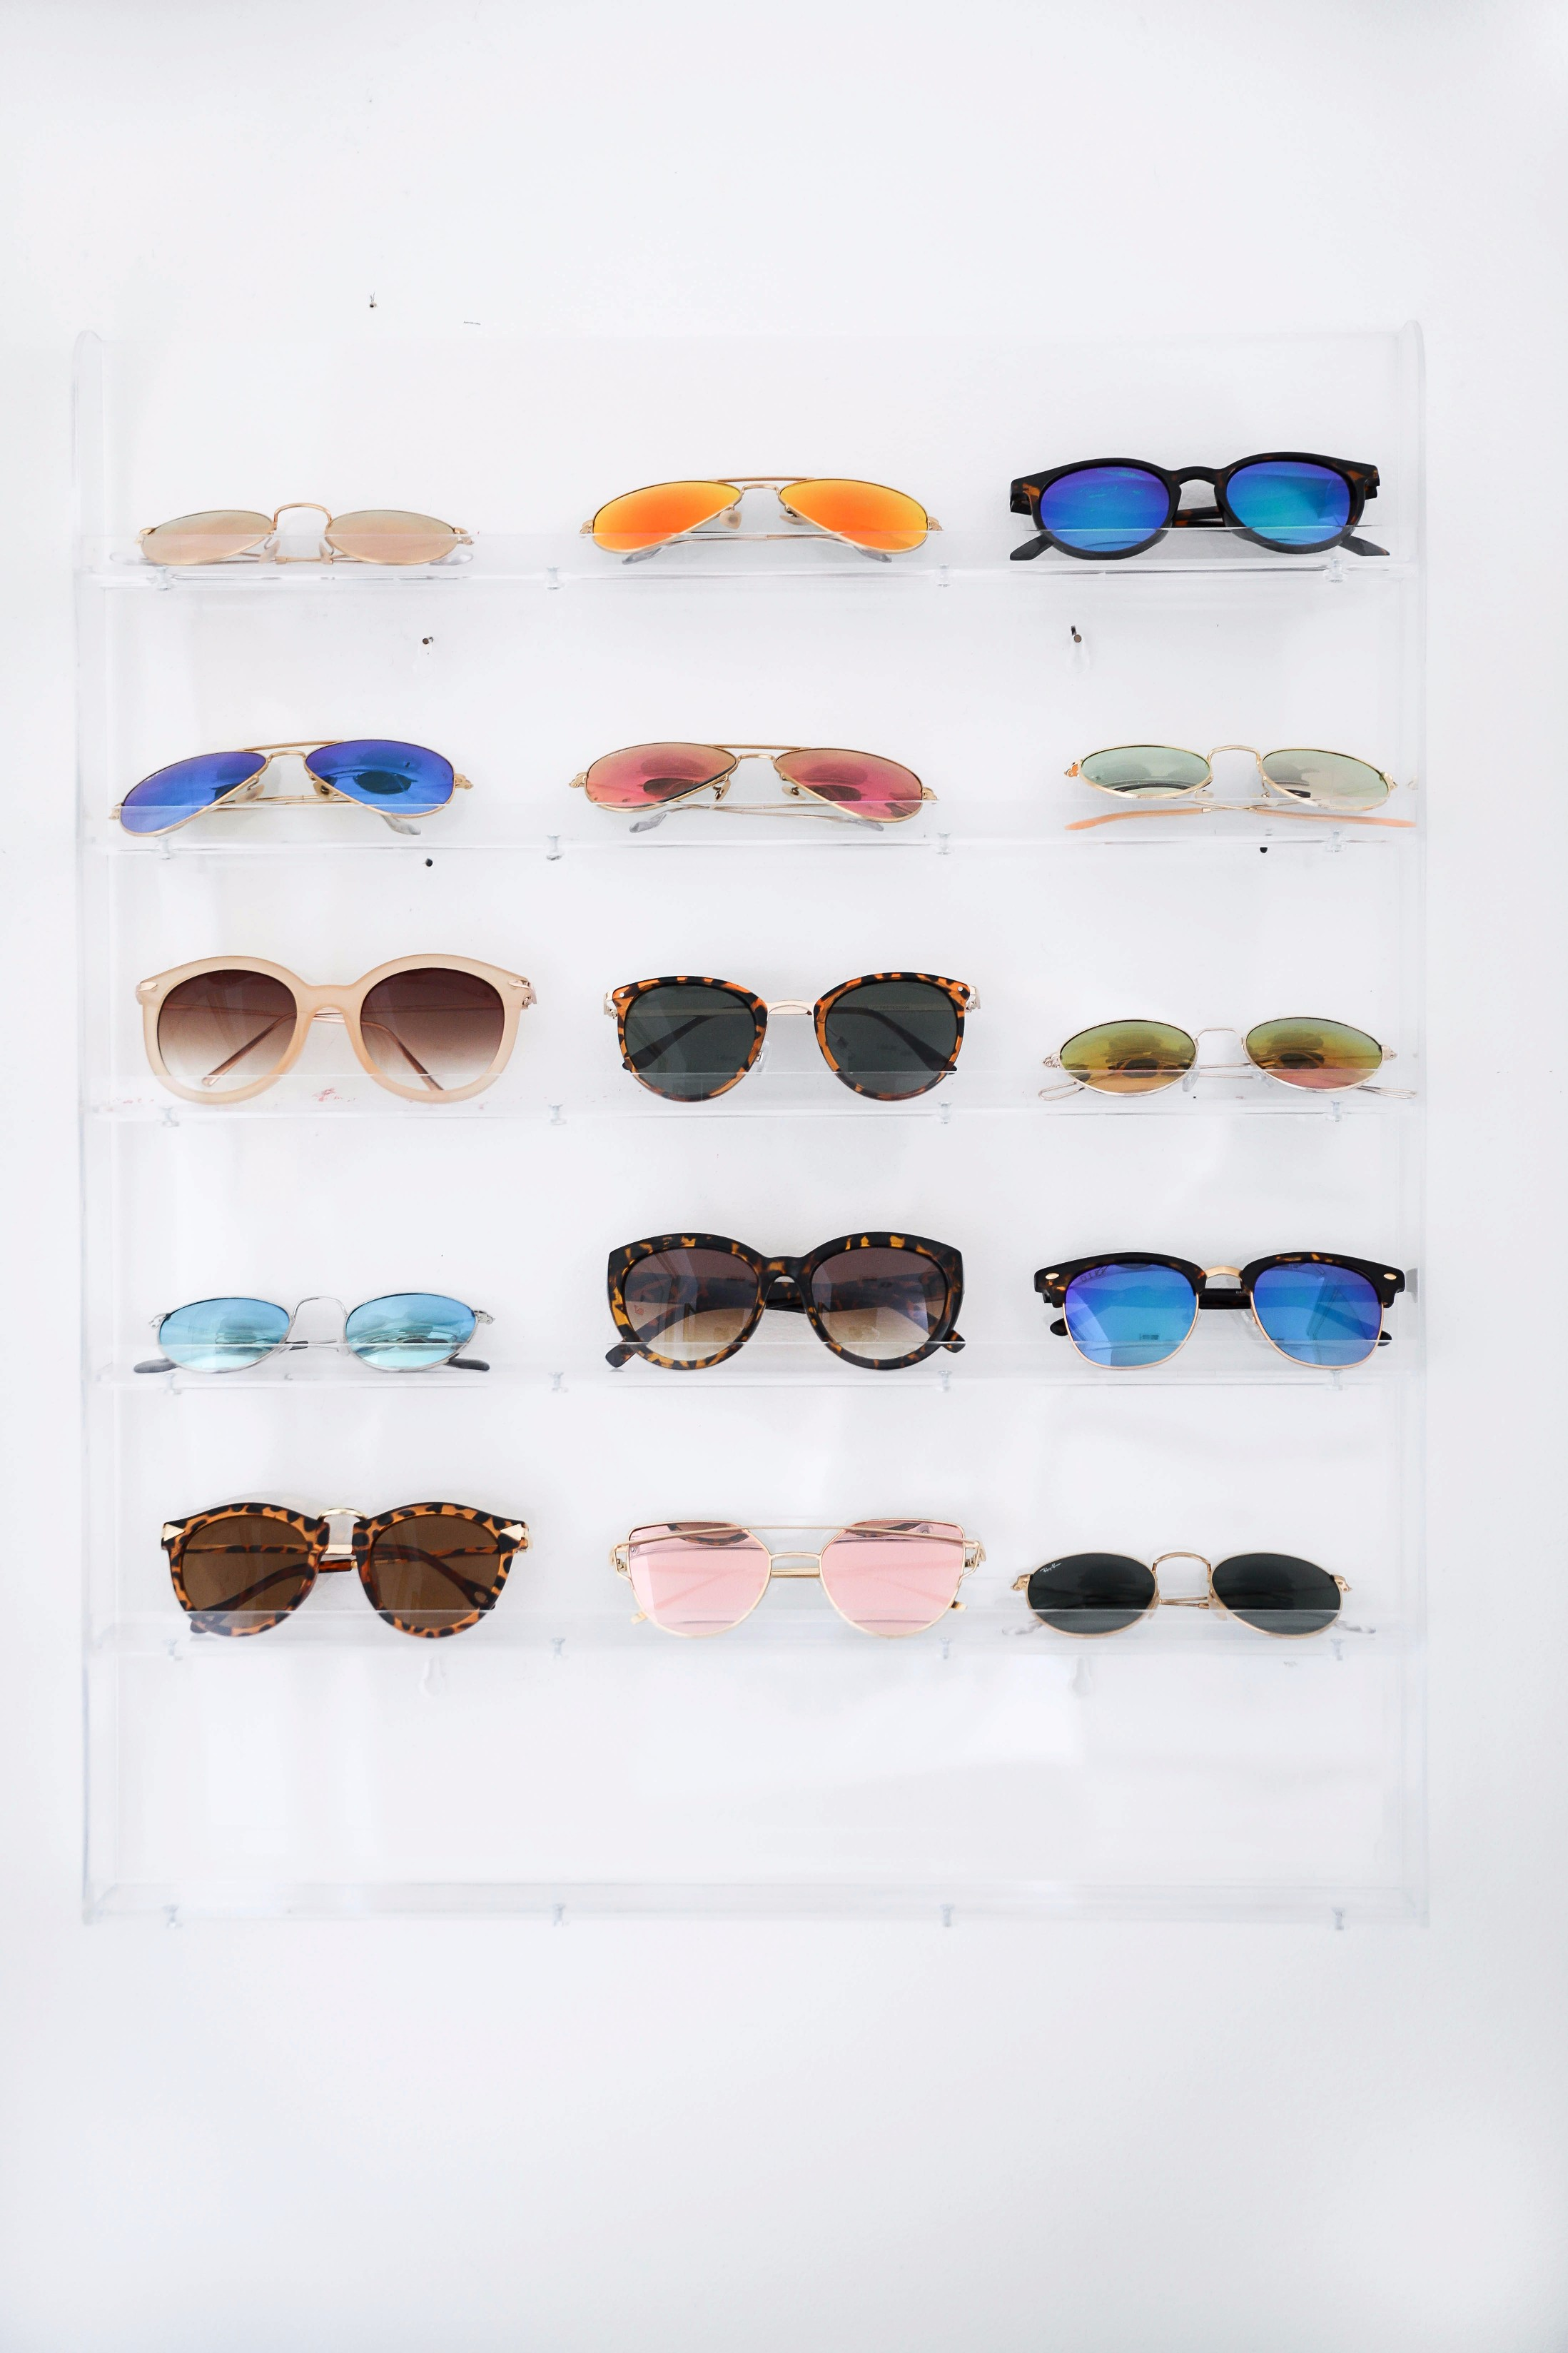 Sunglasses rack June favorites by fashion and lifestyle blogger lauren lindmark on daily dose of charm